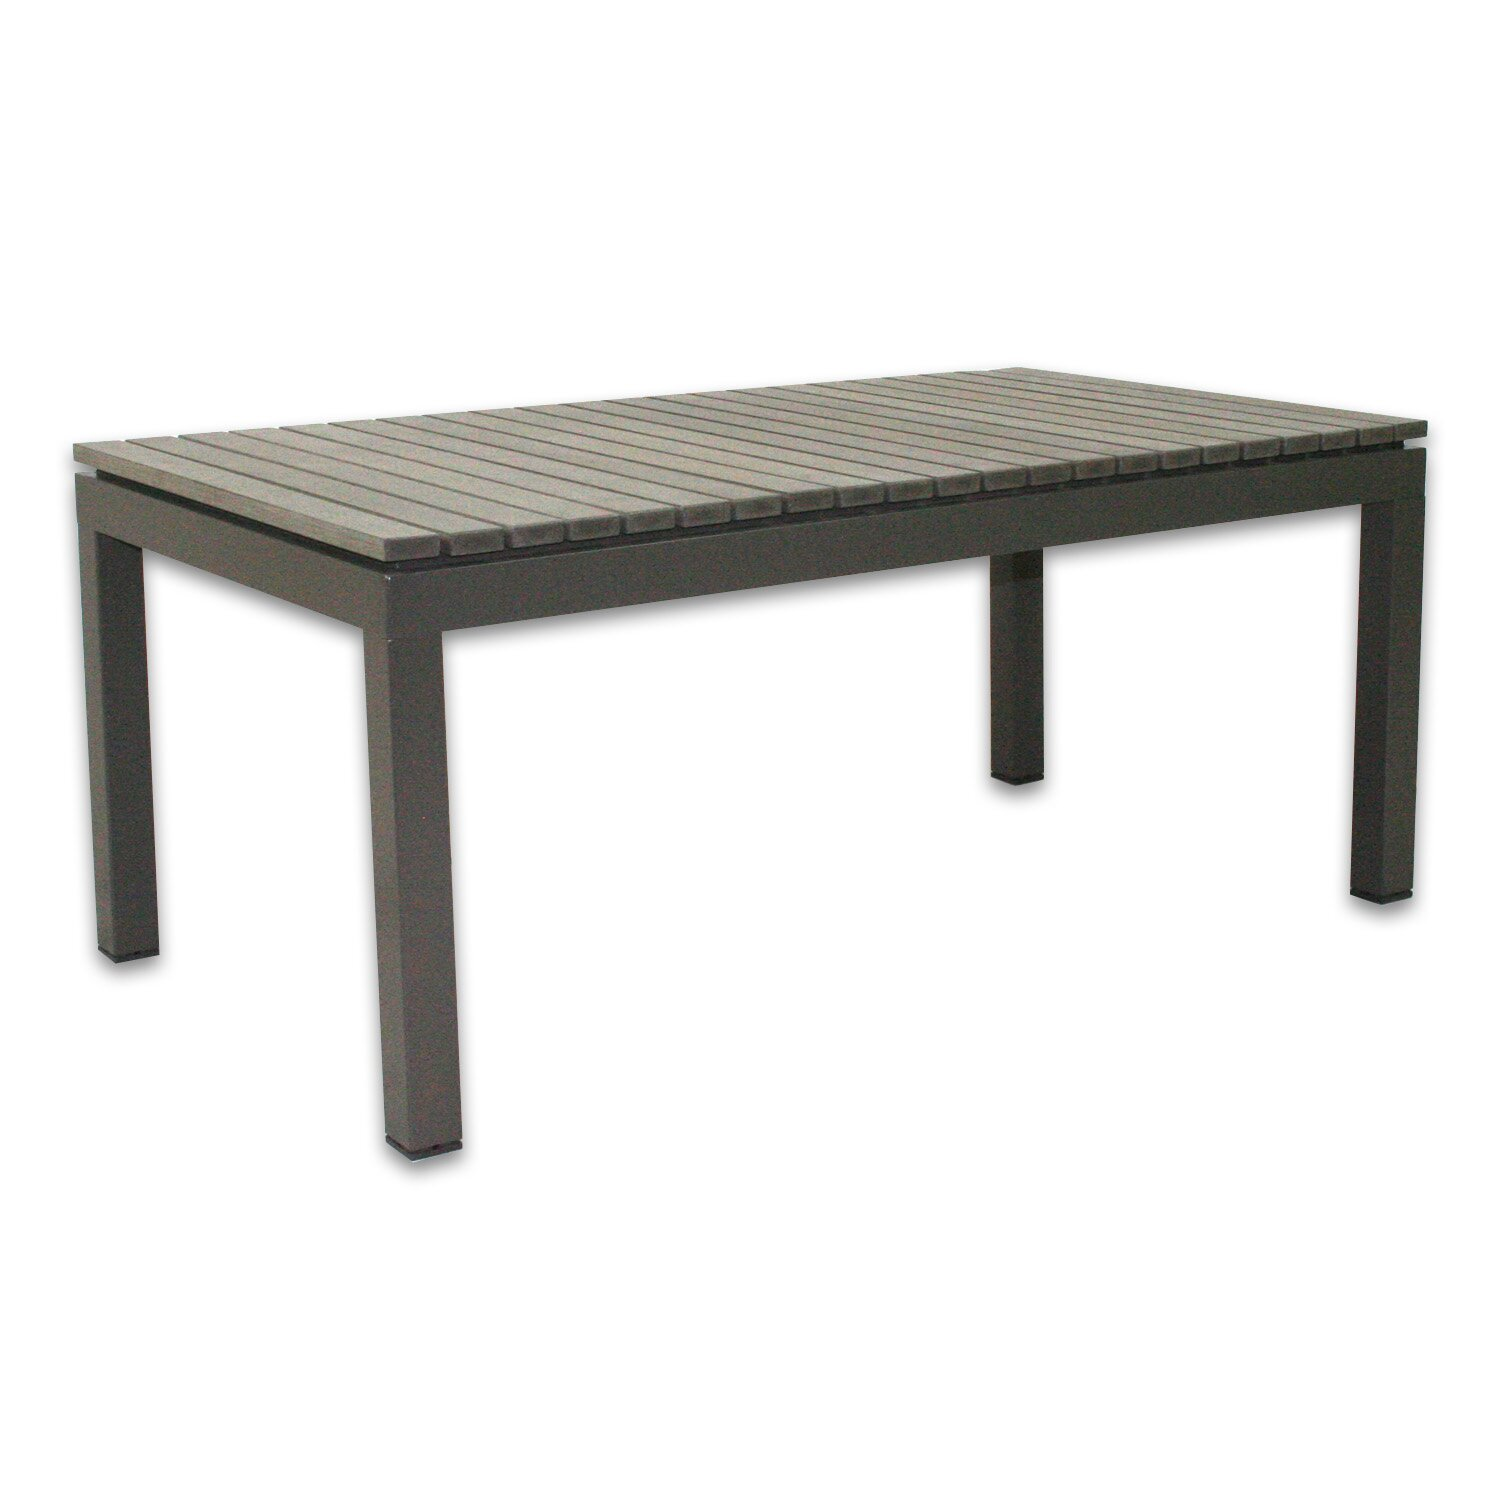 Patio Heaven Riviera Coffee Table Reviews Wayfair